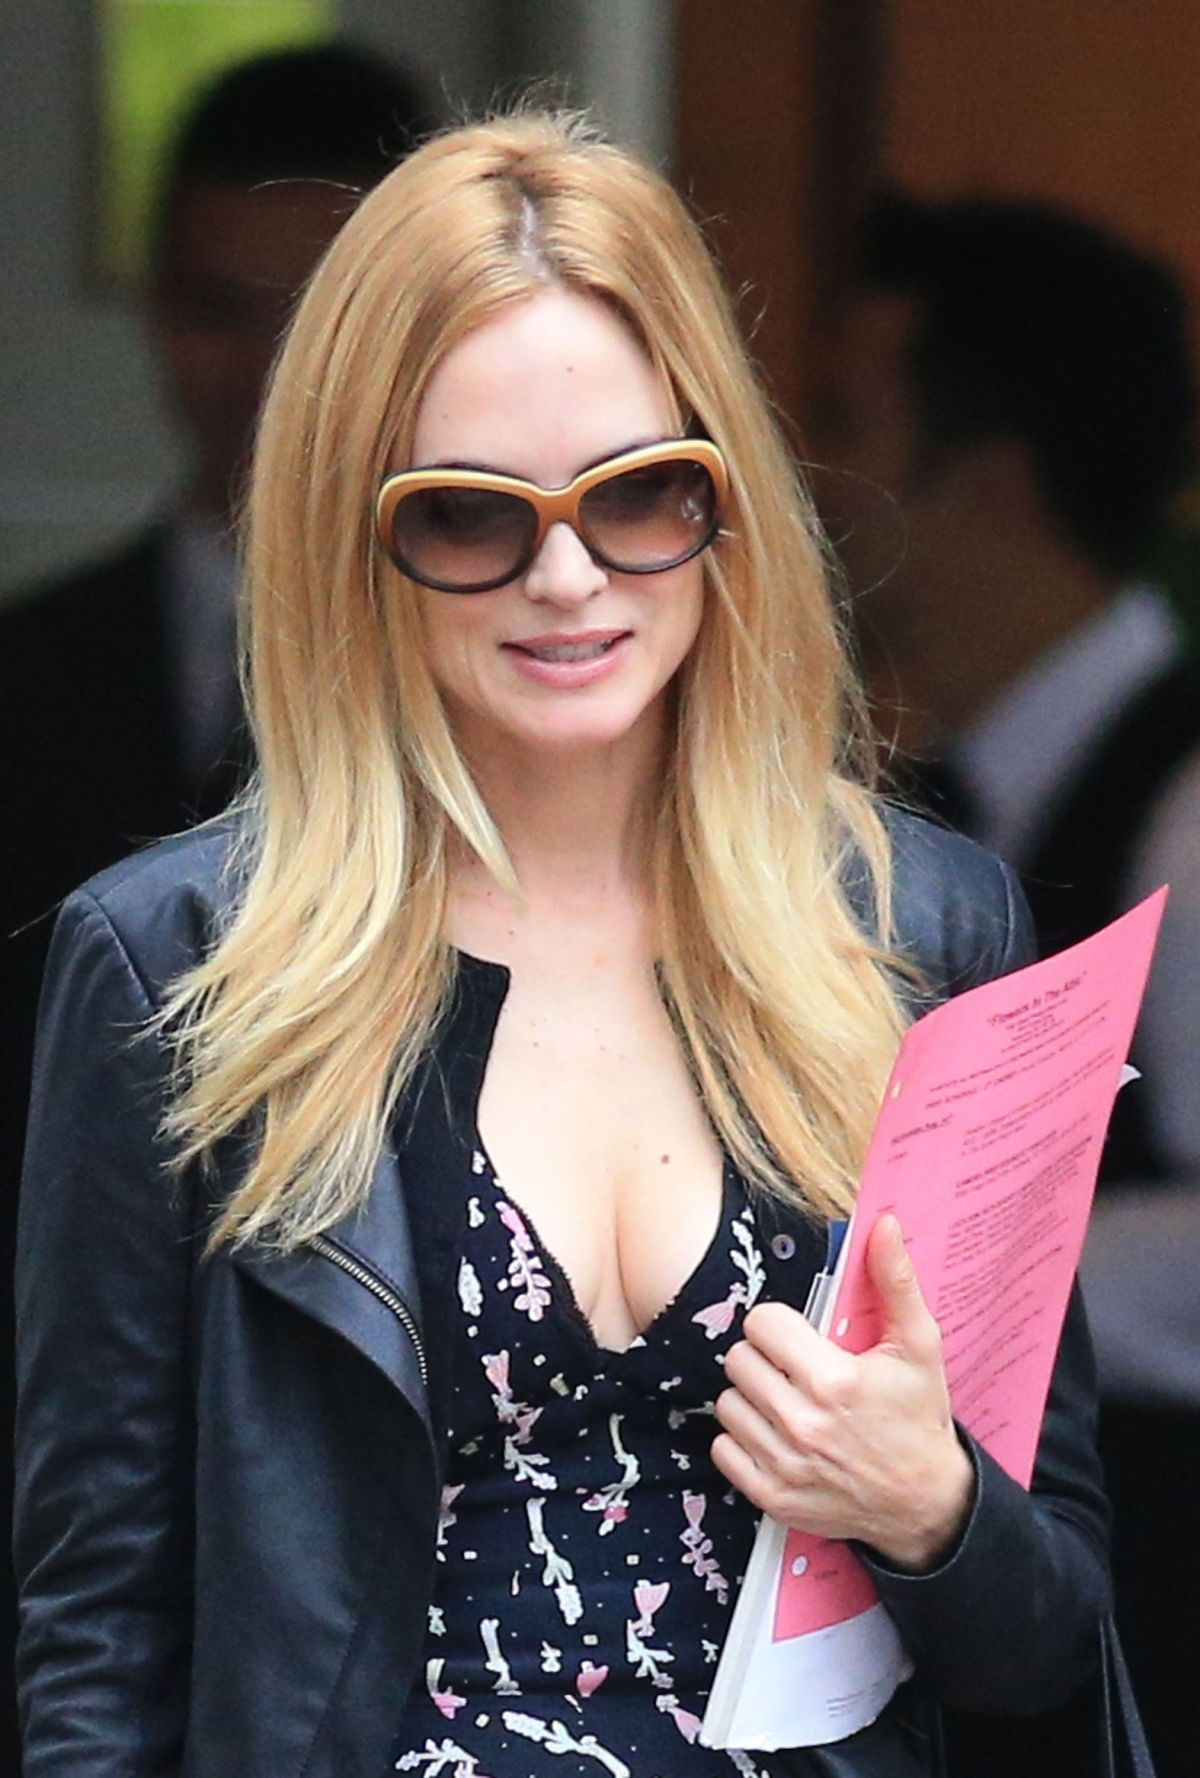 Heather Graham Hot heather graham leaving a hotel in vancouver - celebzz